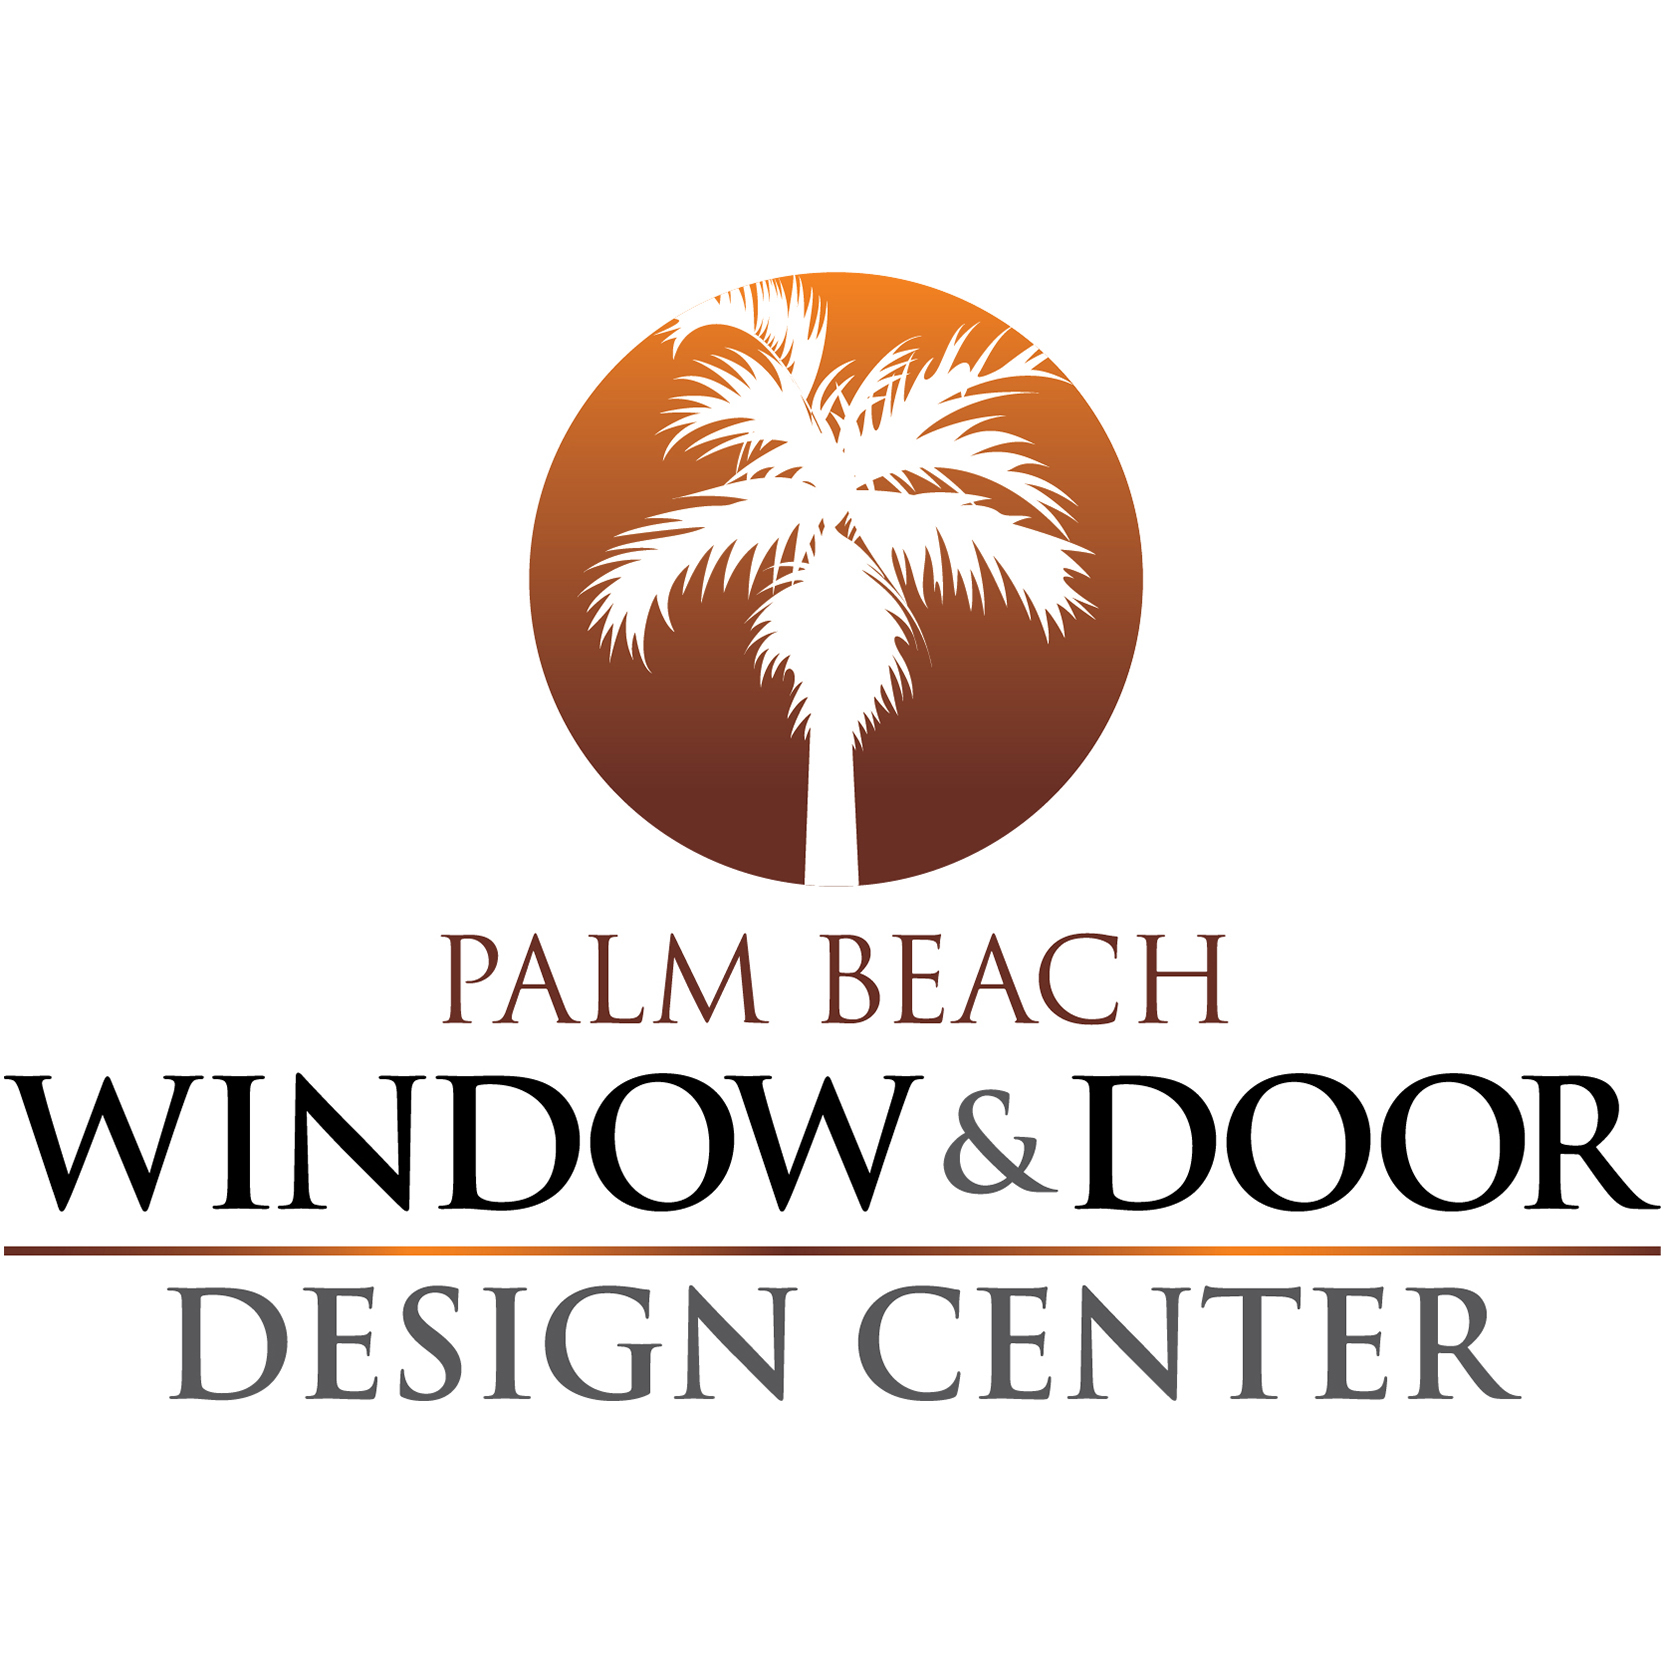 Window and Door Design Center - Palm Beach